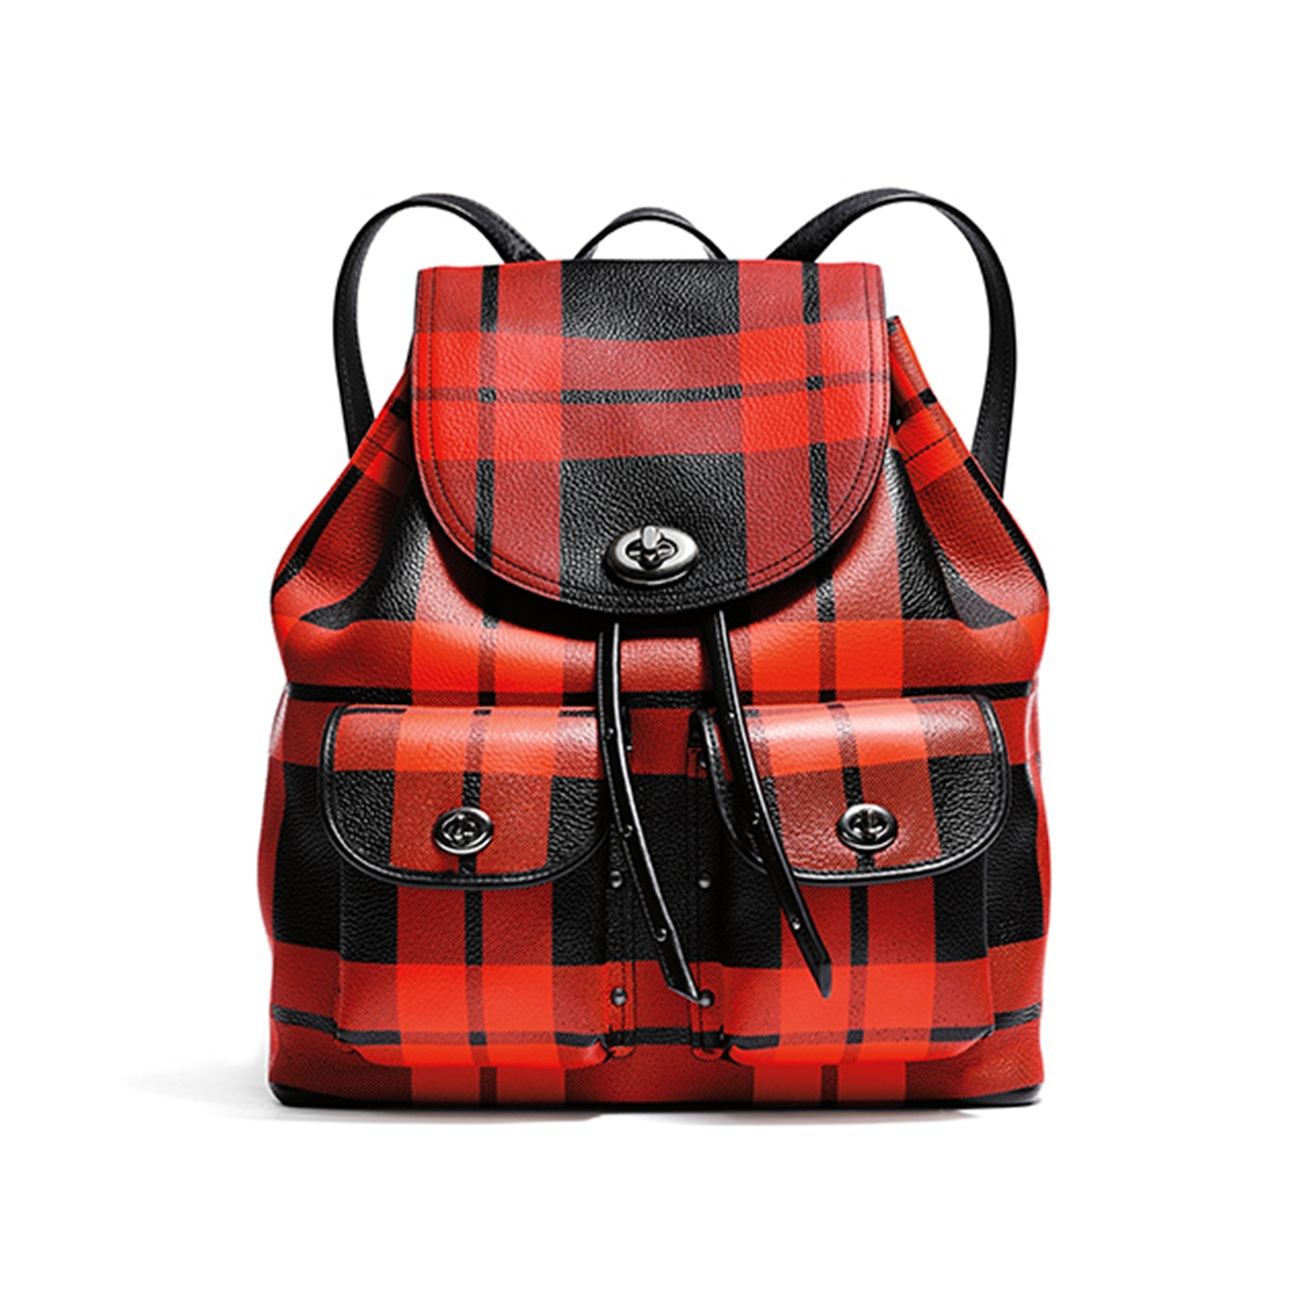 Coach Mount Plaid後背包,NT26,800